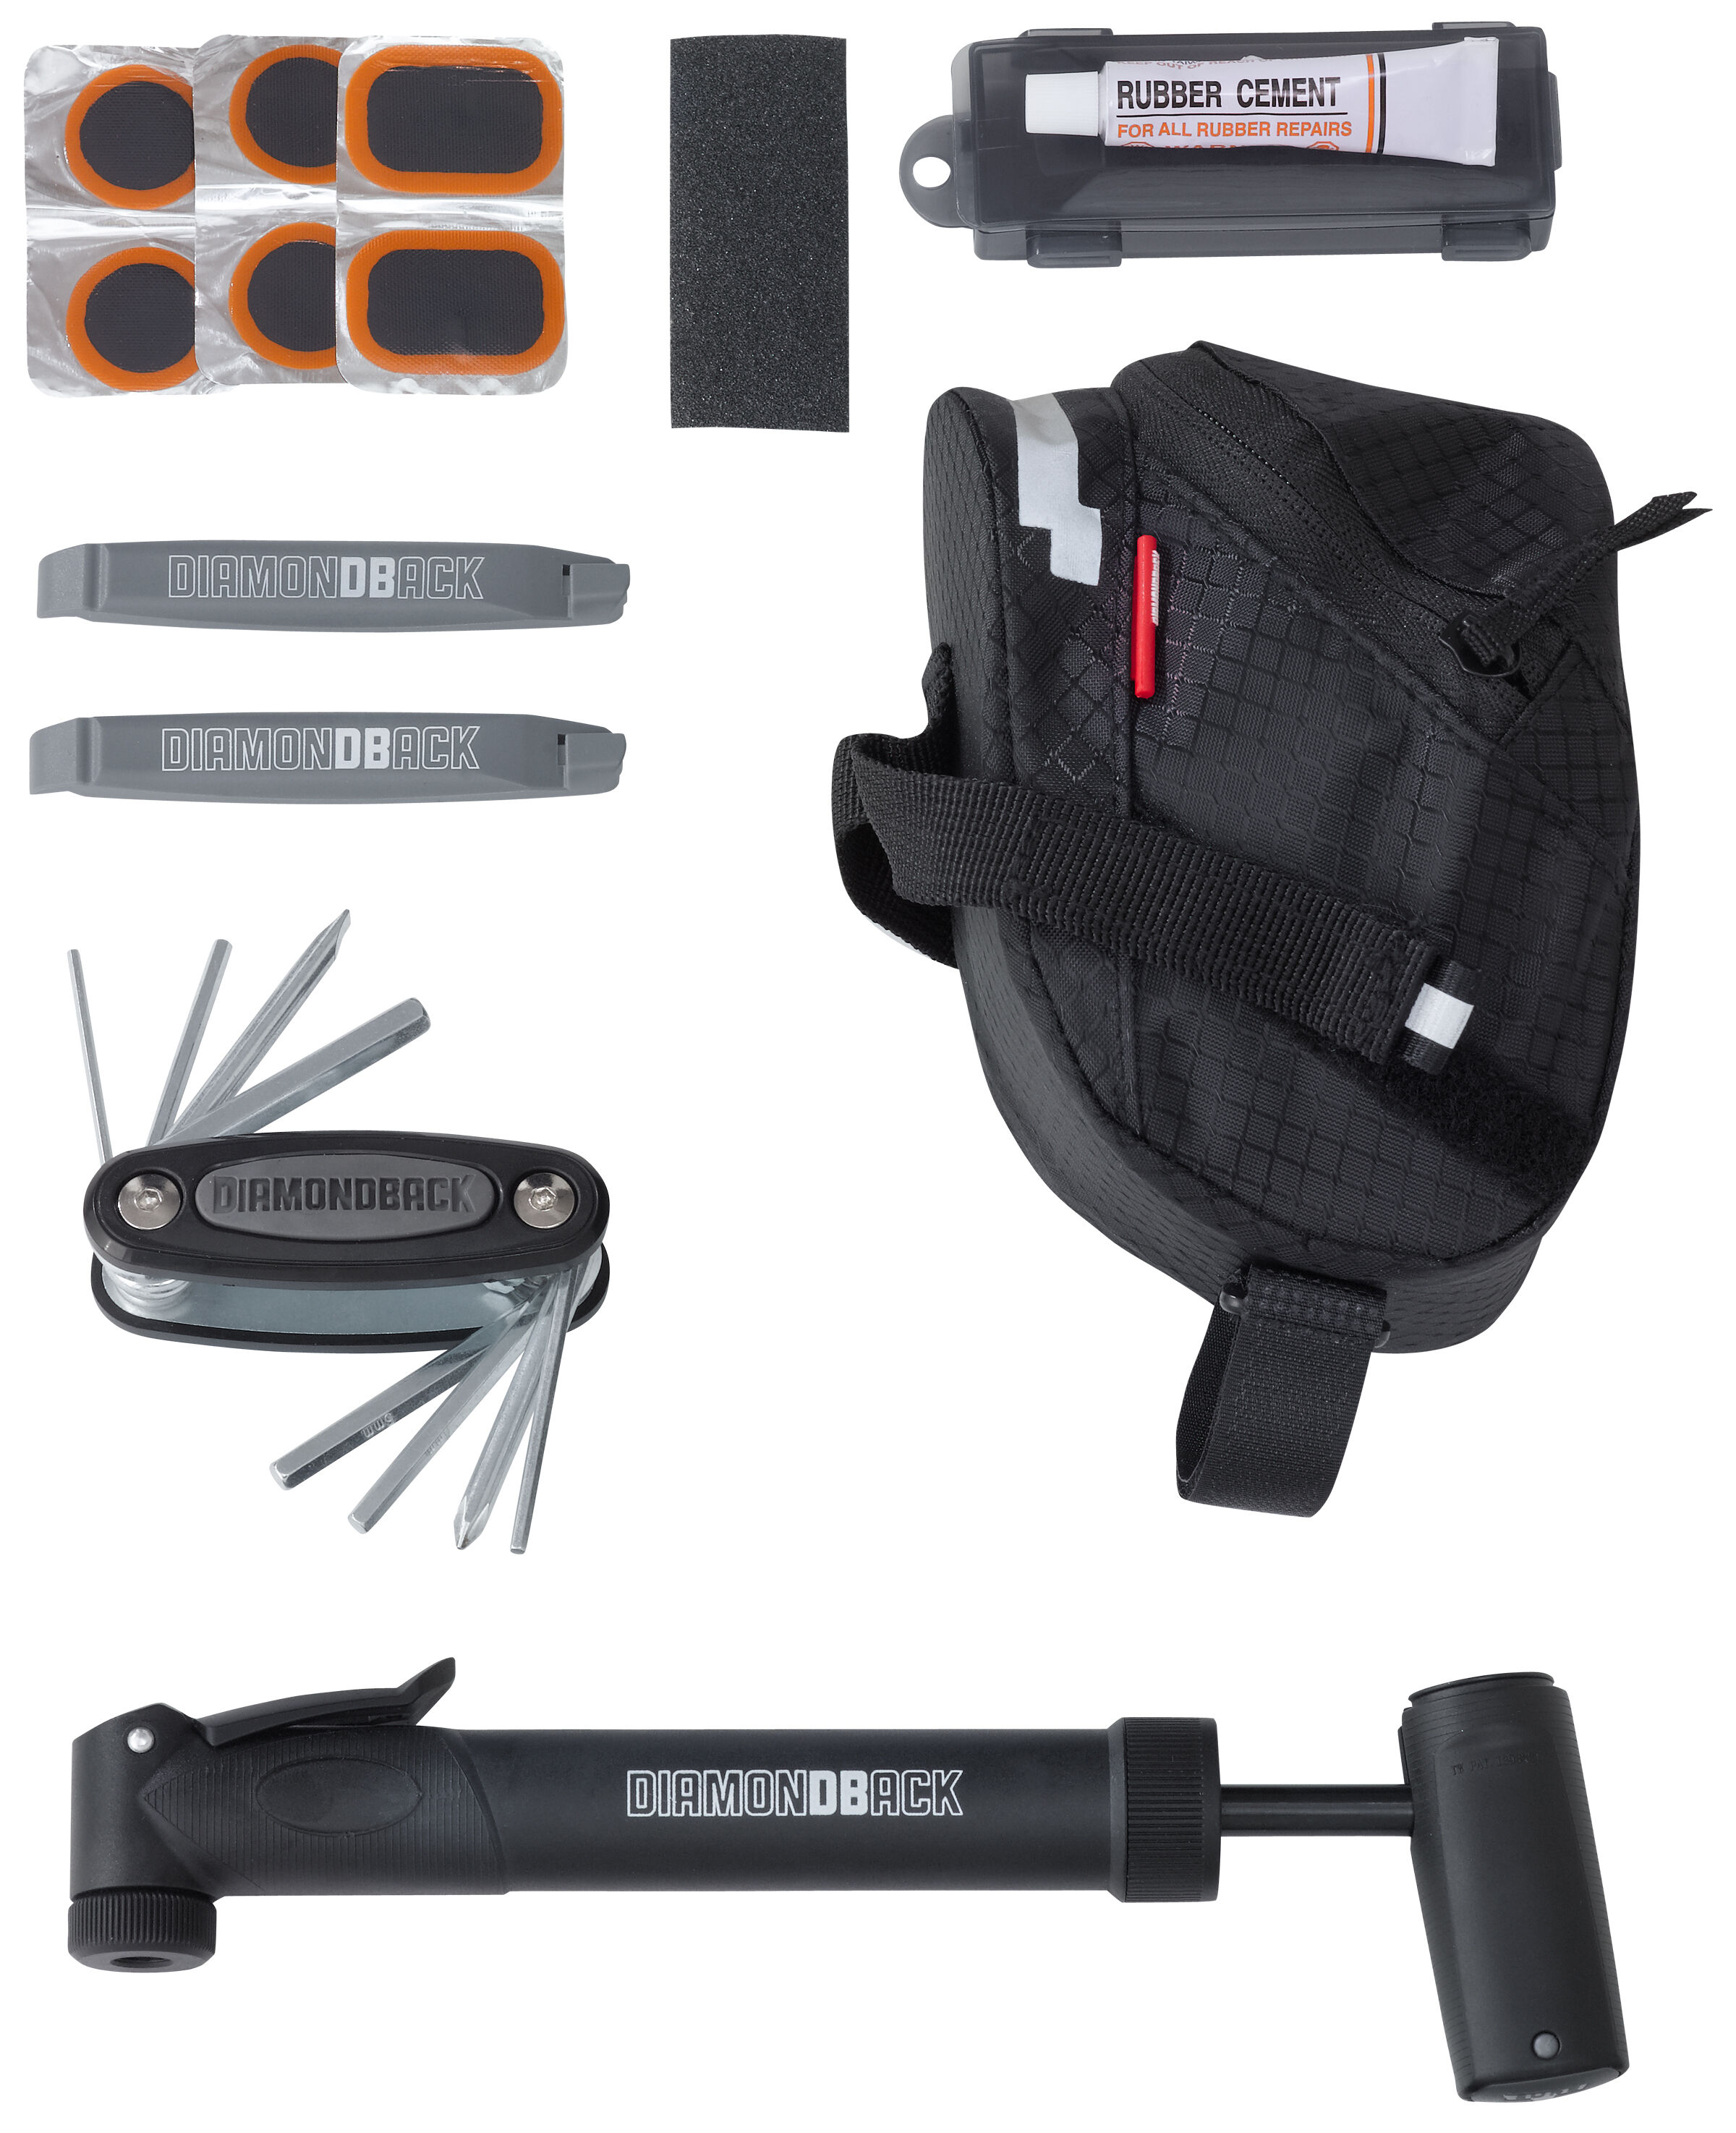 Diamondback Ready 2 Ride Starter Bike Tool Kit